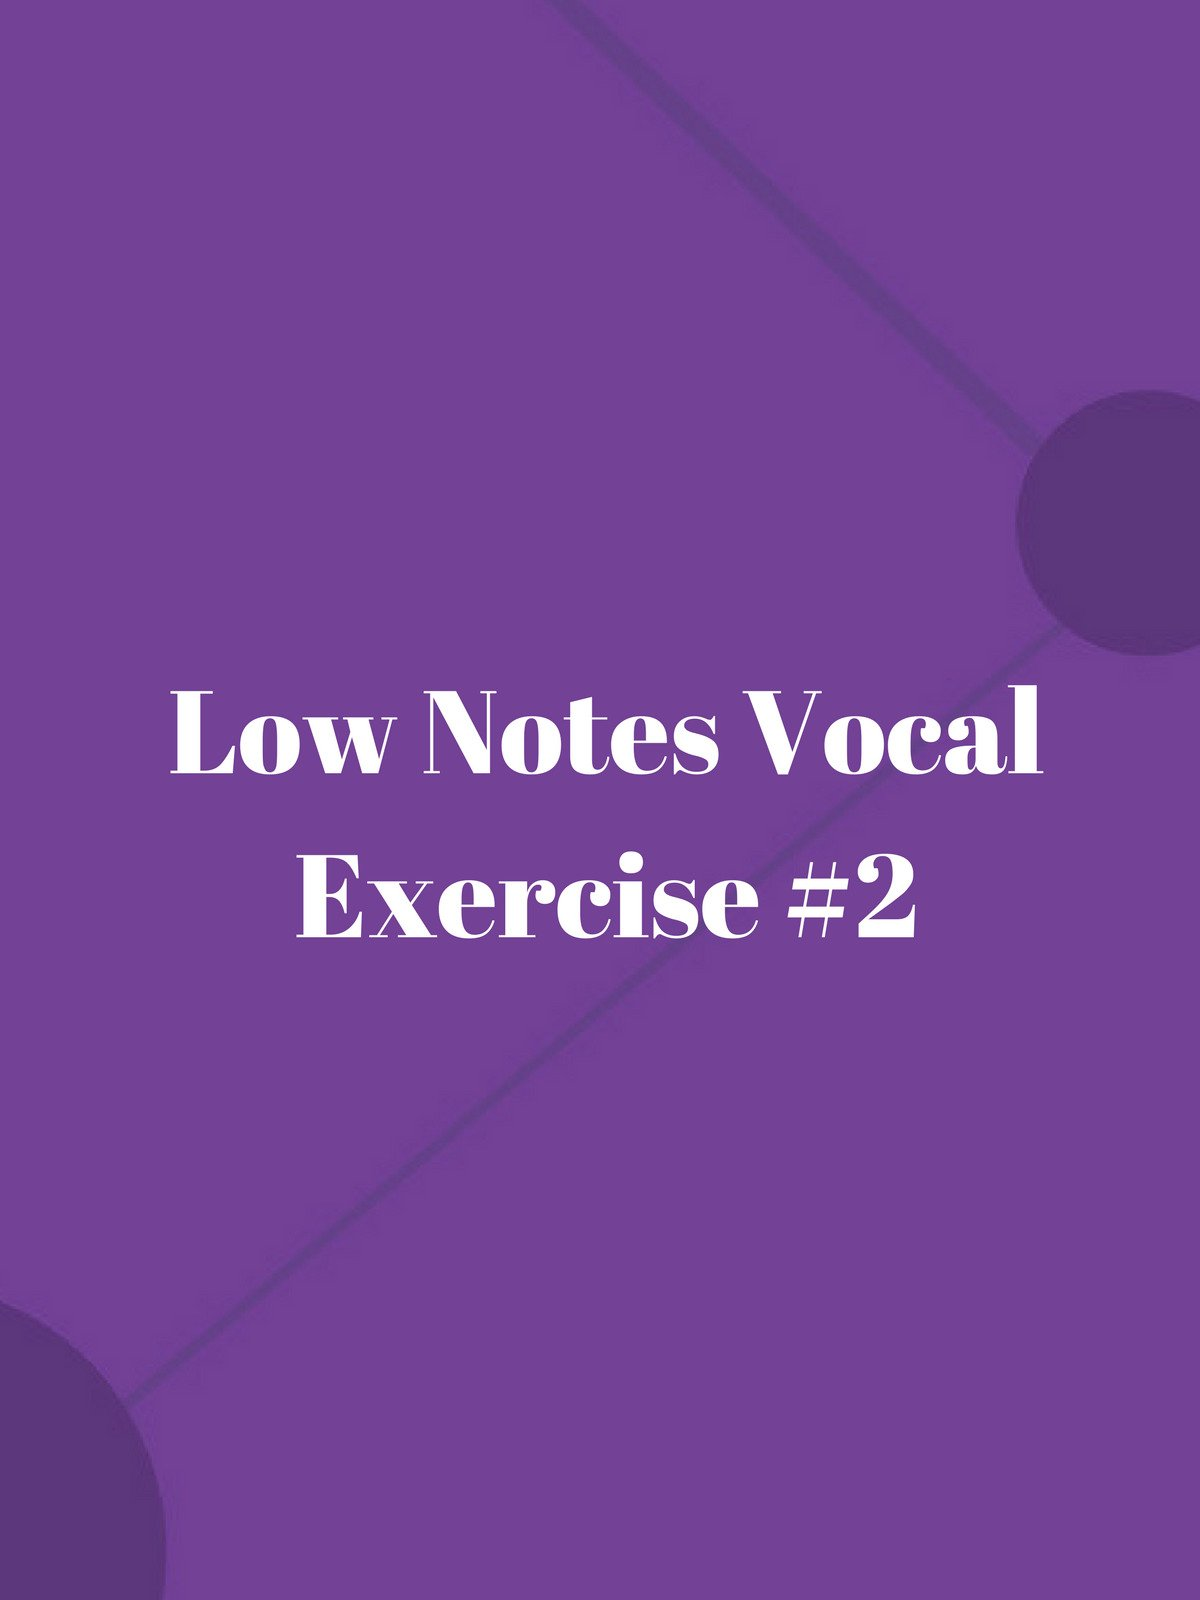 Low Notes Vocal Exercise #2 on Amazon Prime Video UK